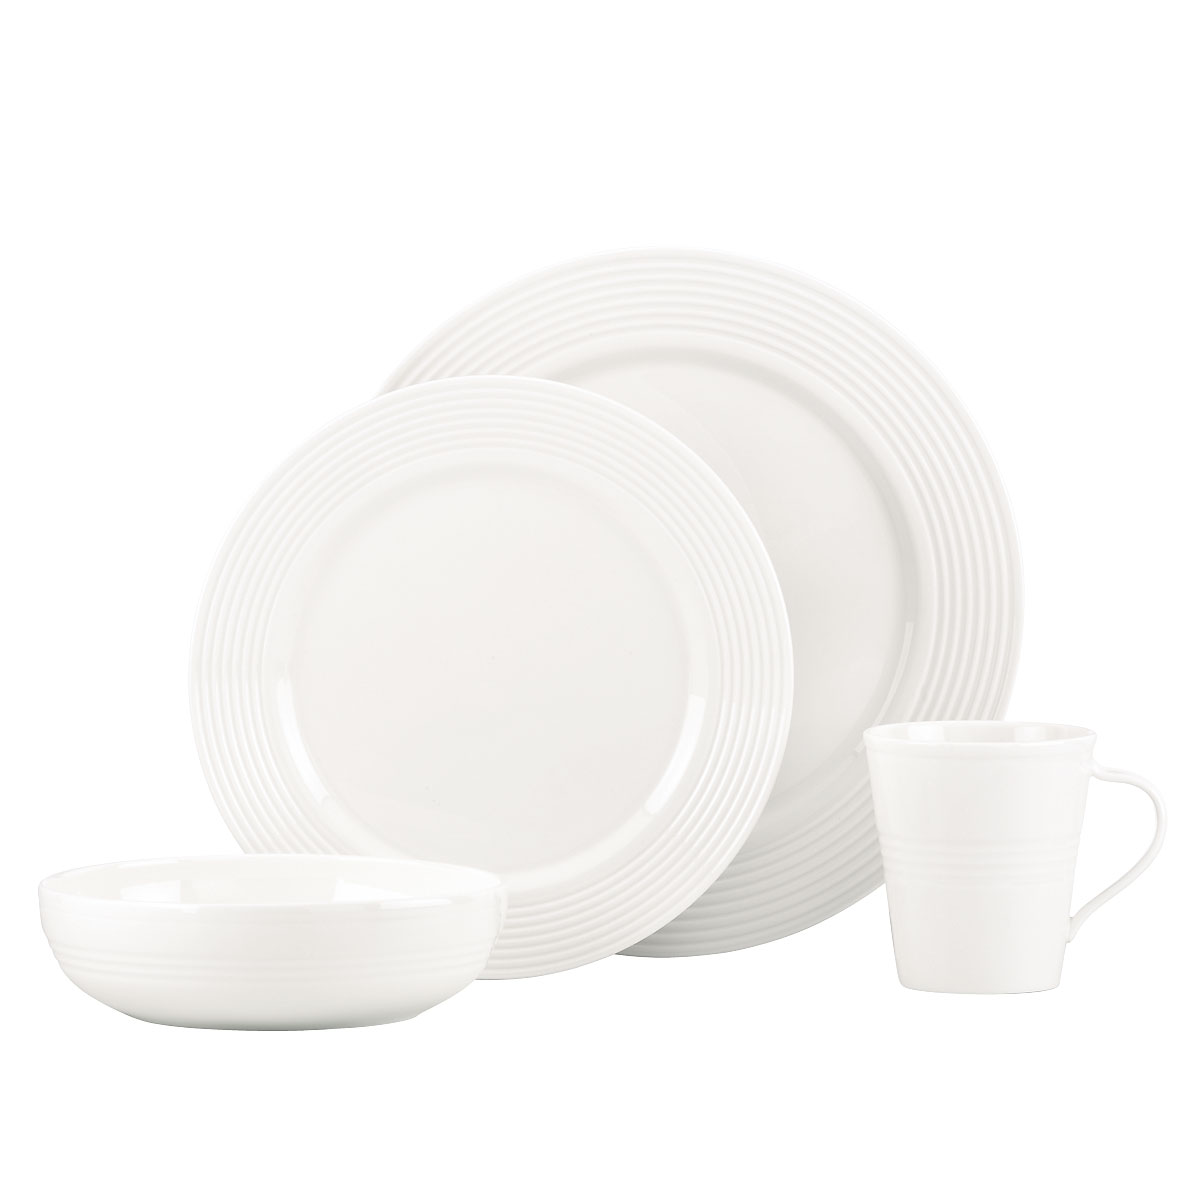 Lenox Tin Can Alley Seven Degree, 4 Piece Place Setting